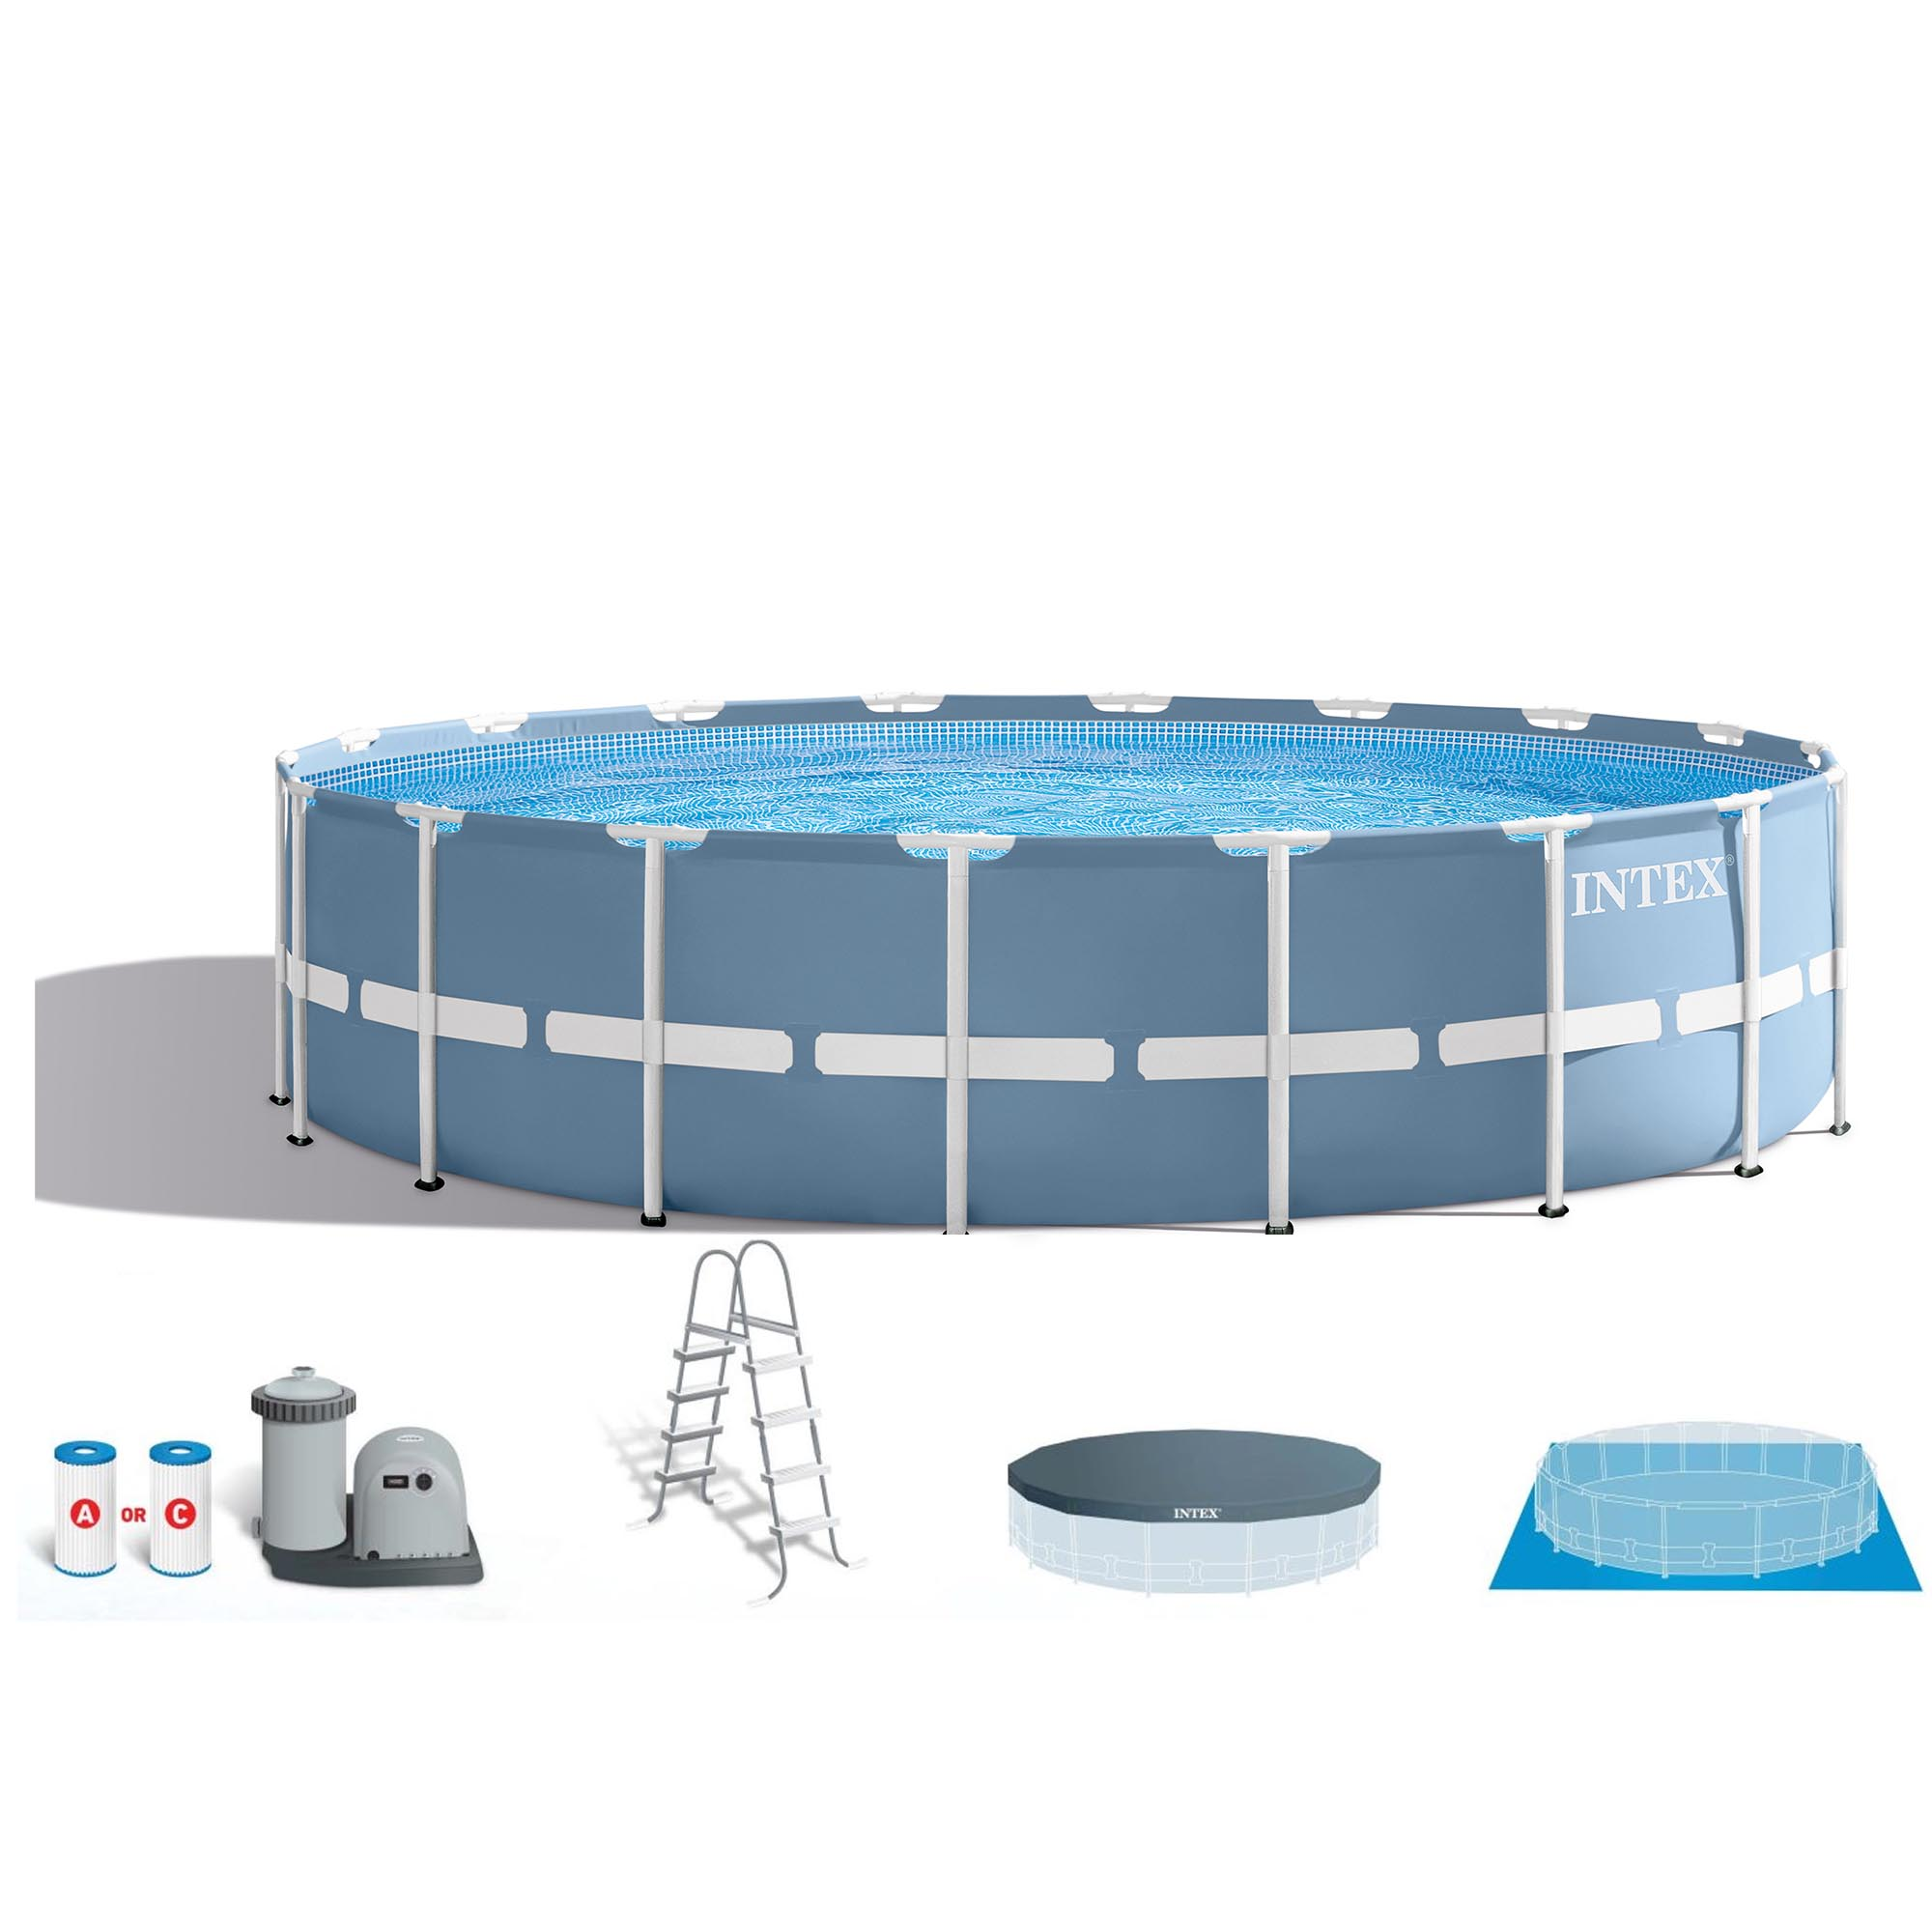 Intex 18 Feet x 48 Inches Prism Frame Swimming Pool Set Ladder, Cover, & Pump by Intex